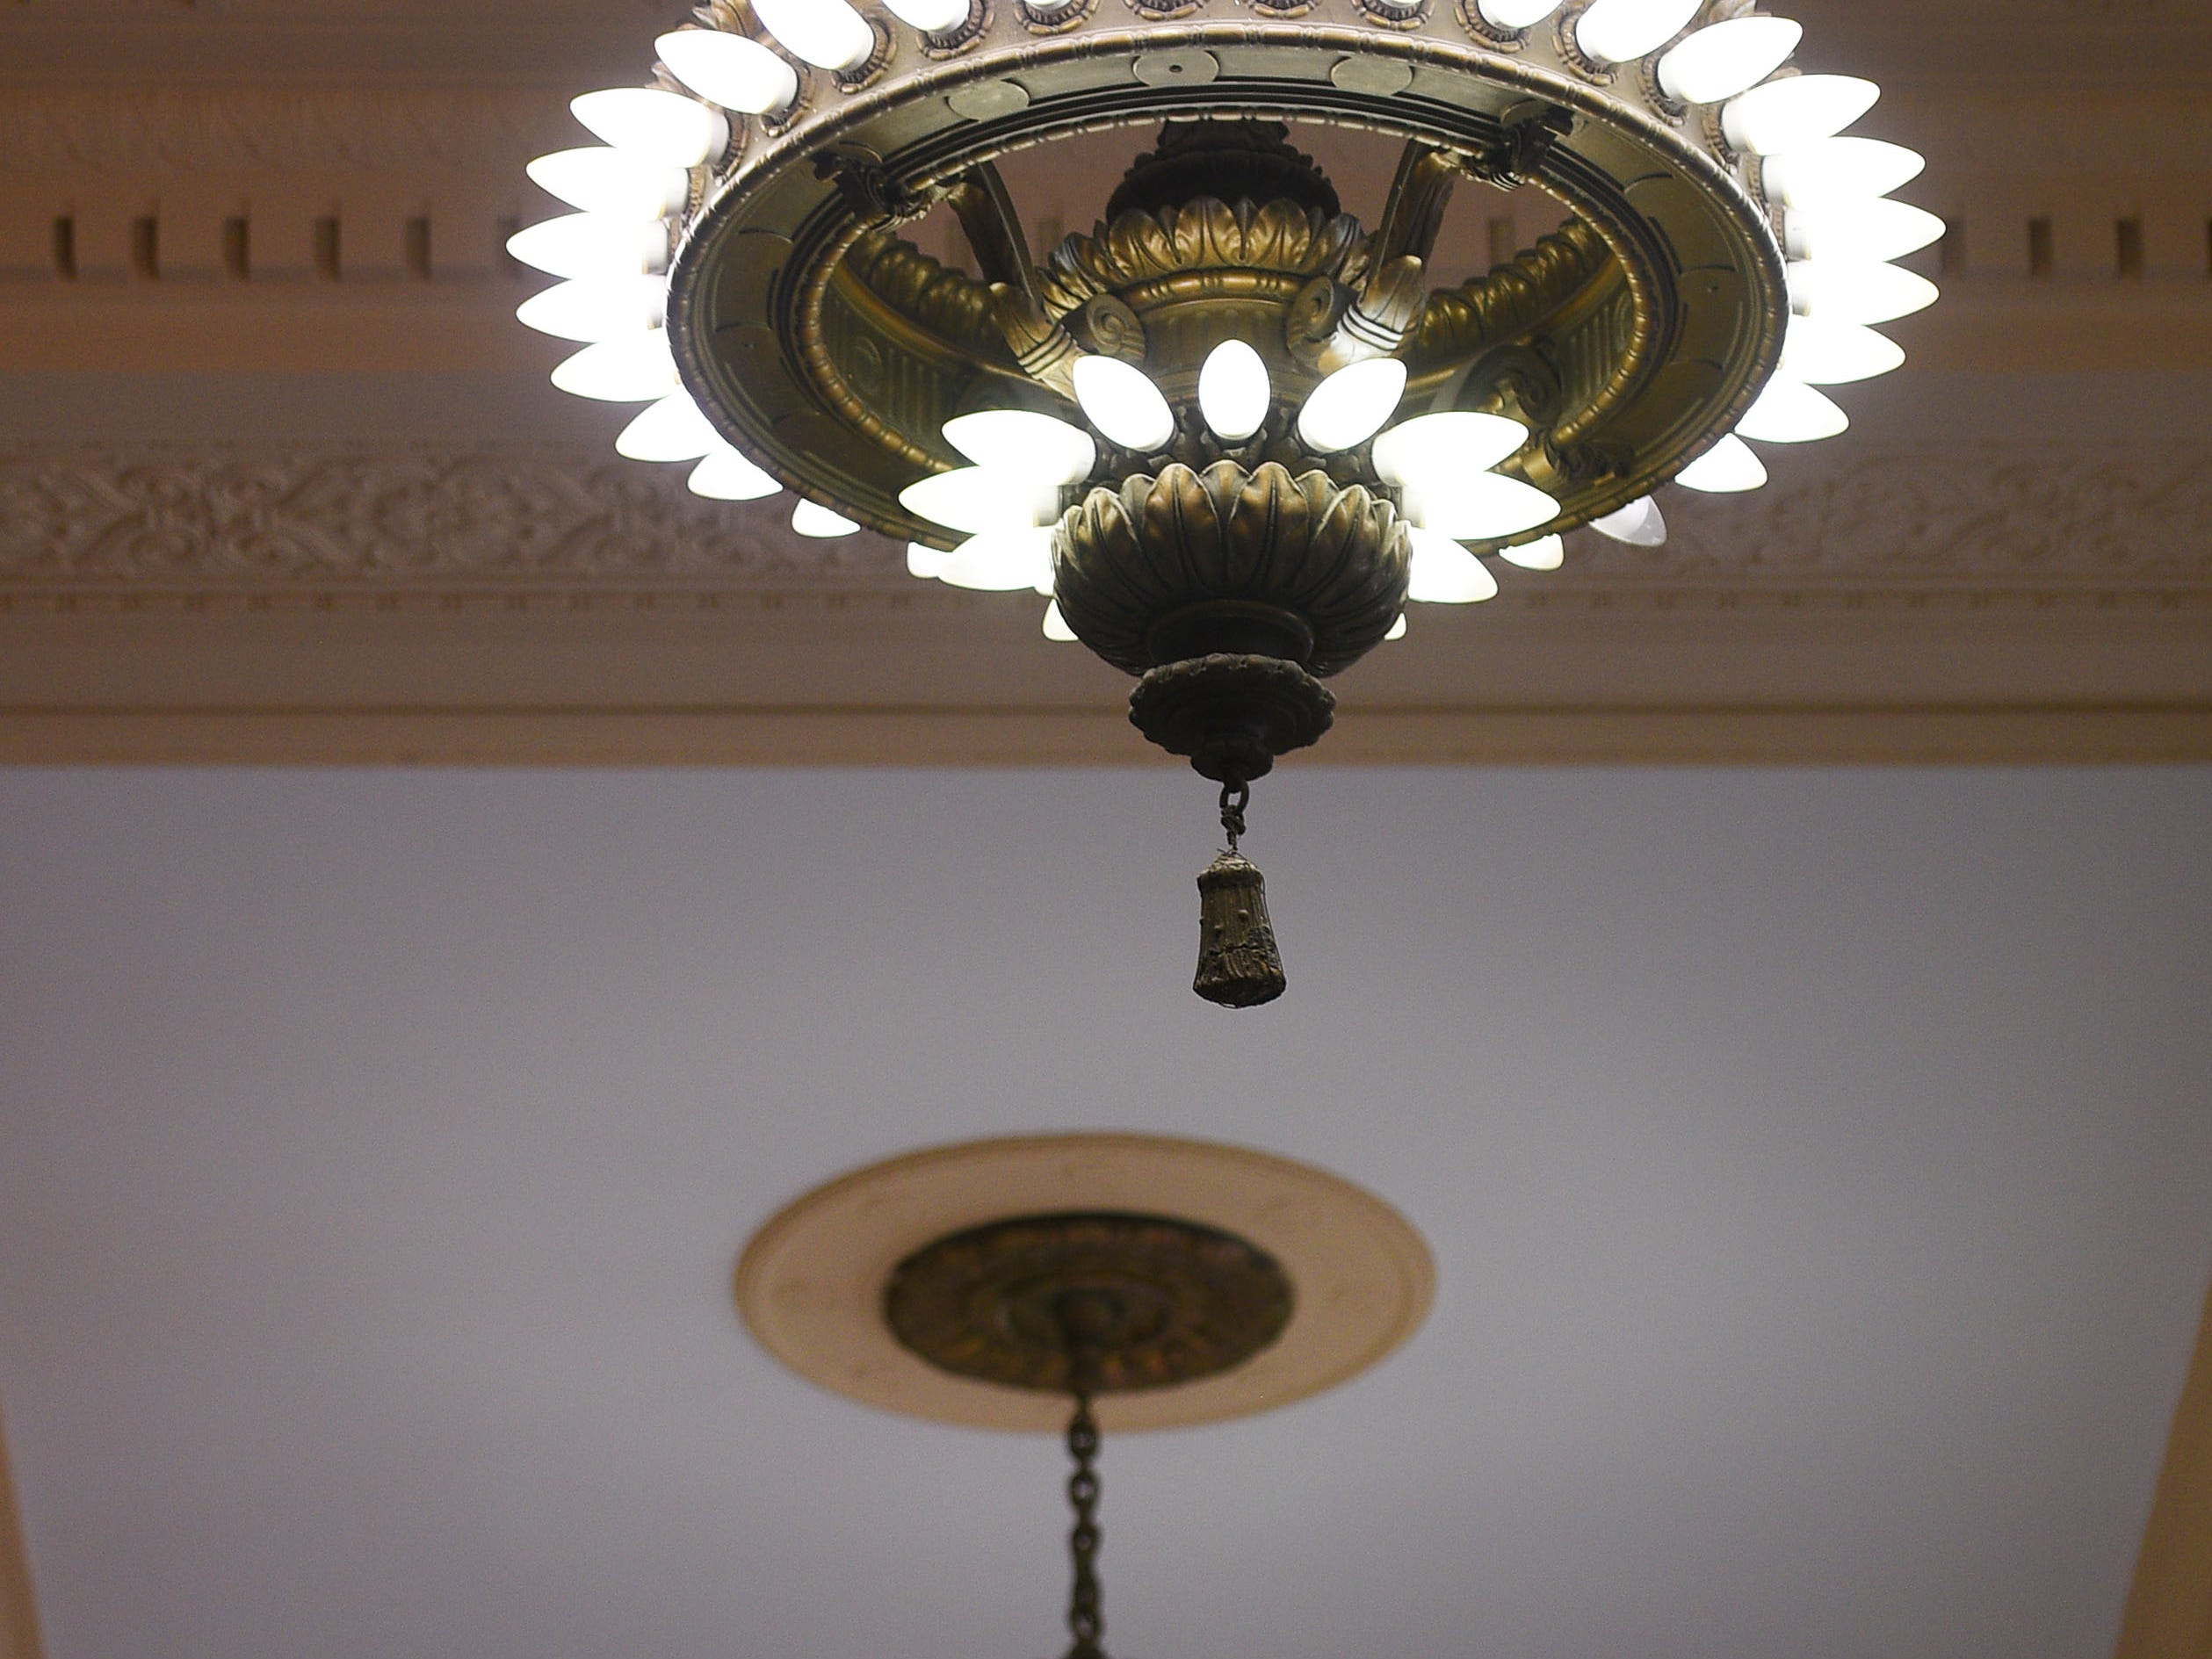 Original fixtures in Hotel Phillips Thursday, Oct. 11, in downtown Sioux Falls. The luxury hotel is an ongoing remodel of the old Great Western building.